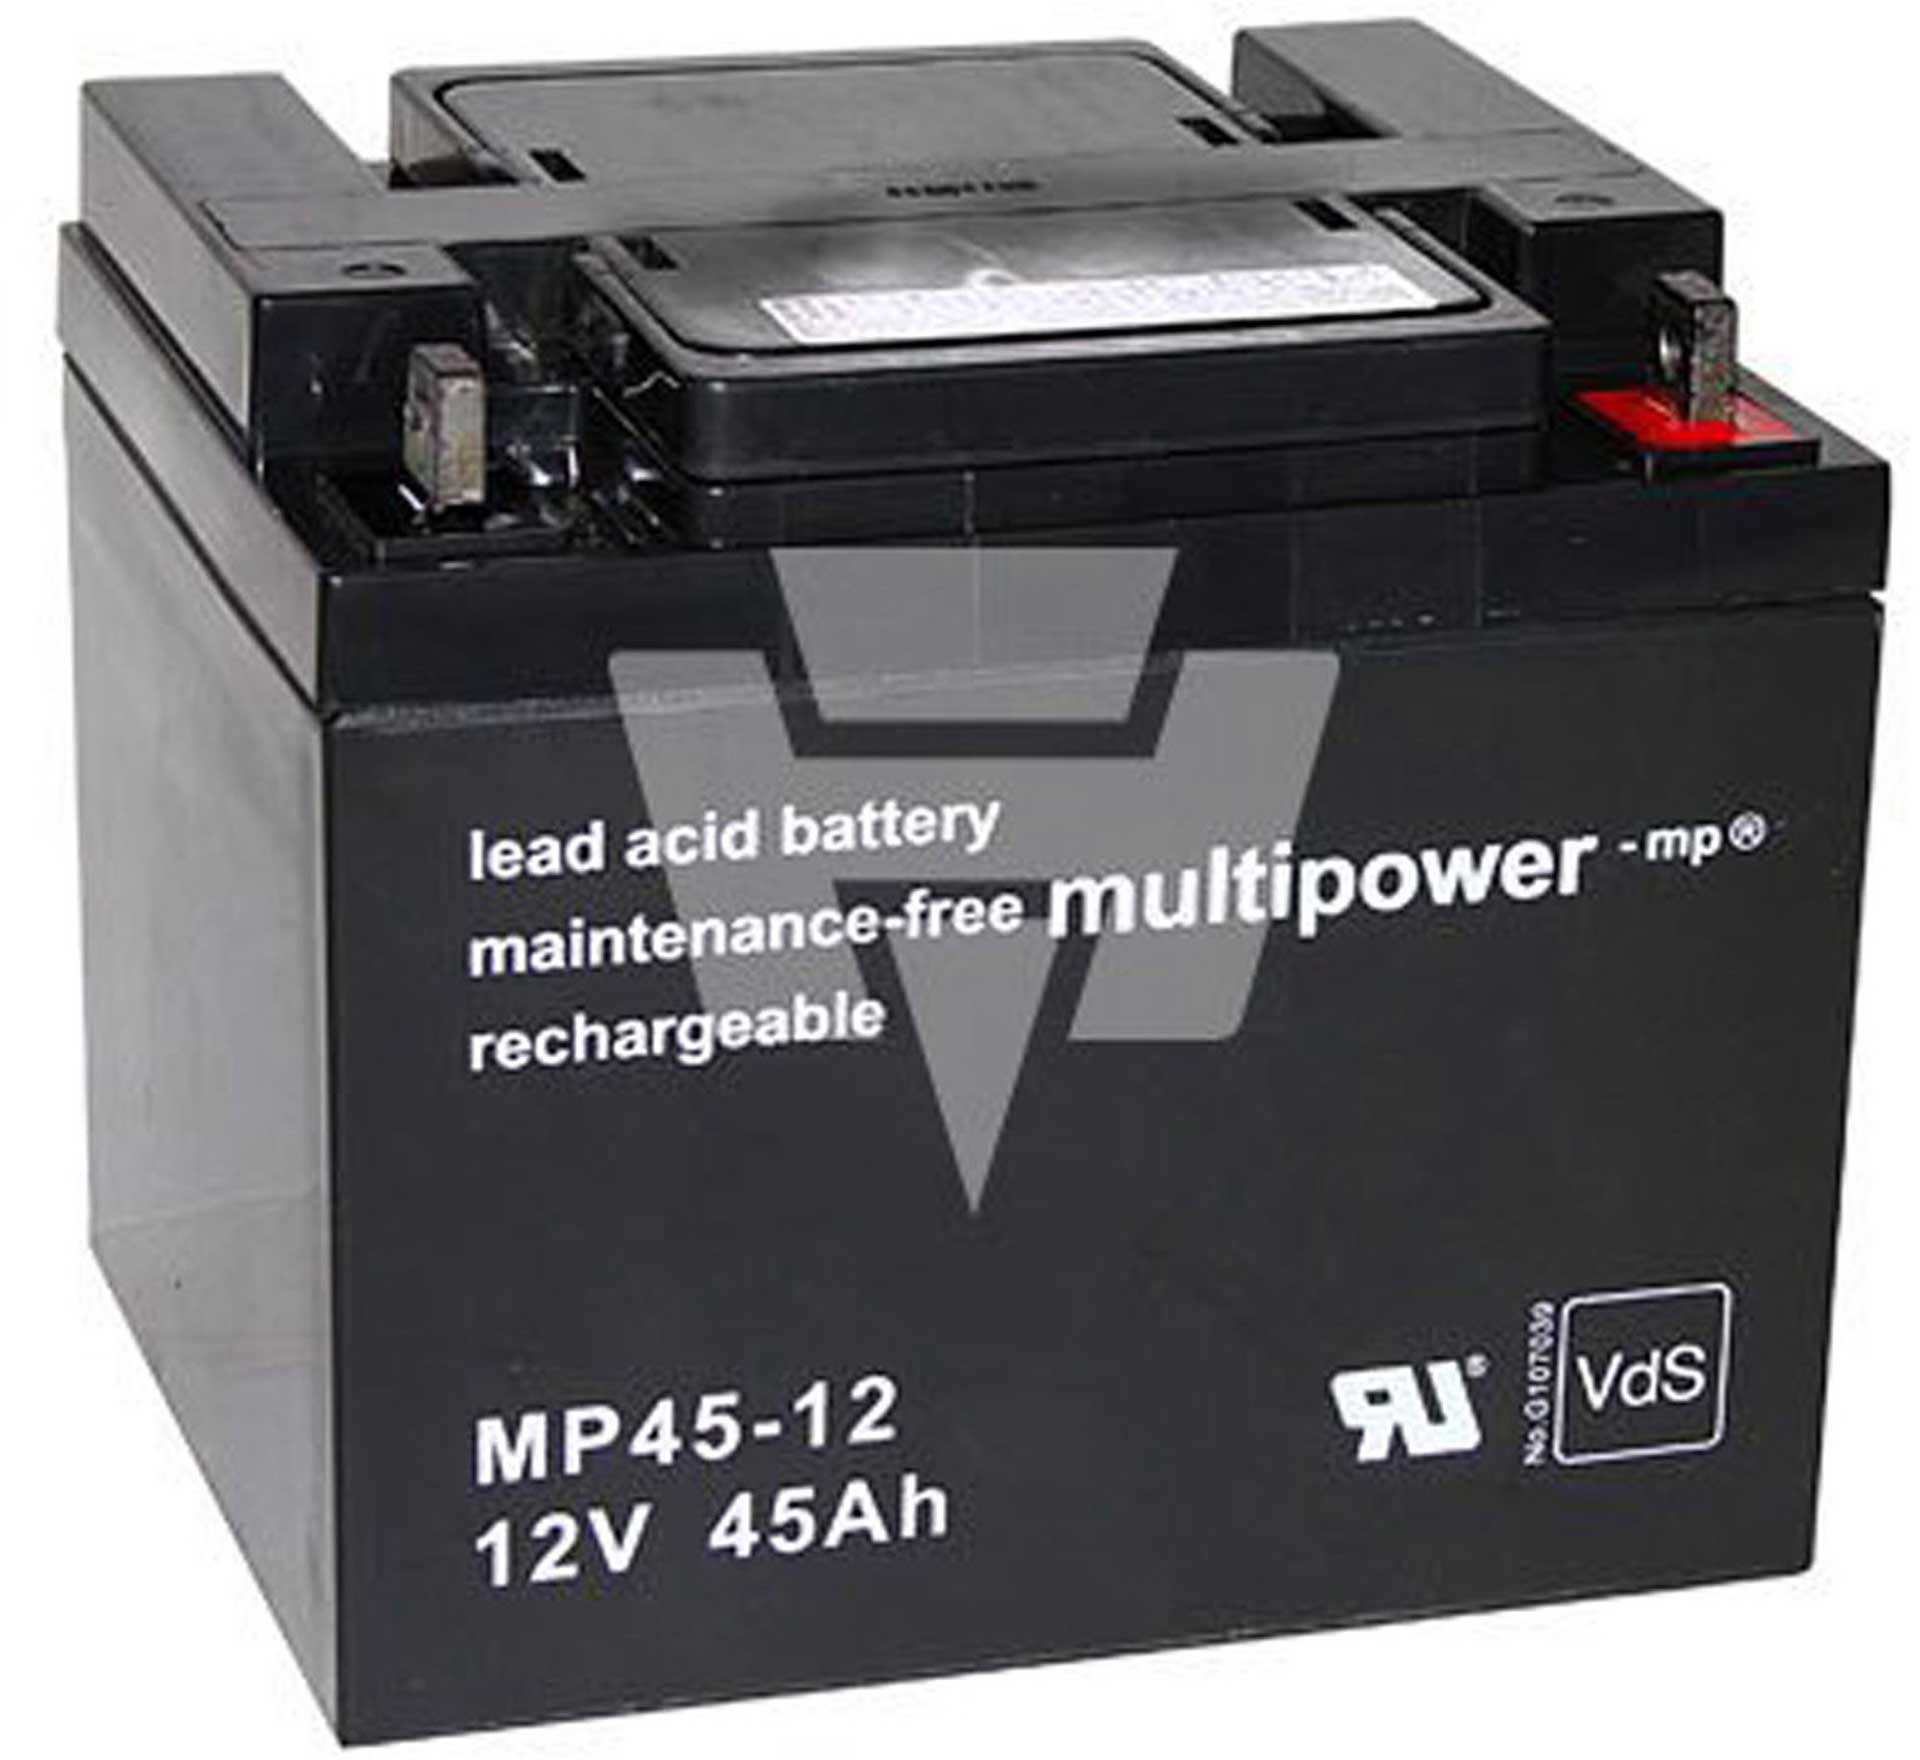 MULTIPOWER LEAD ACID BATTERY MP45-12 PB 12V 45000M AH MBL 12/45AH/VDS